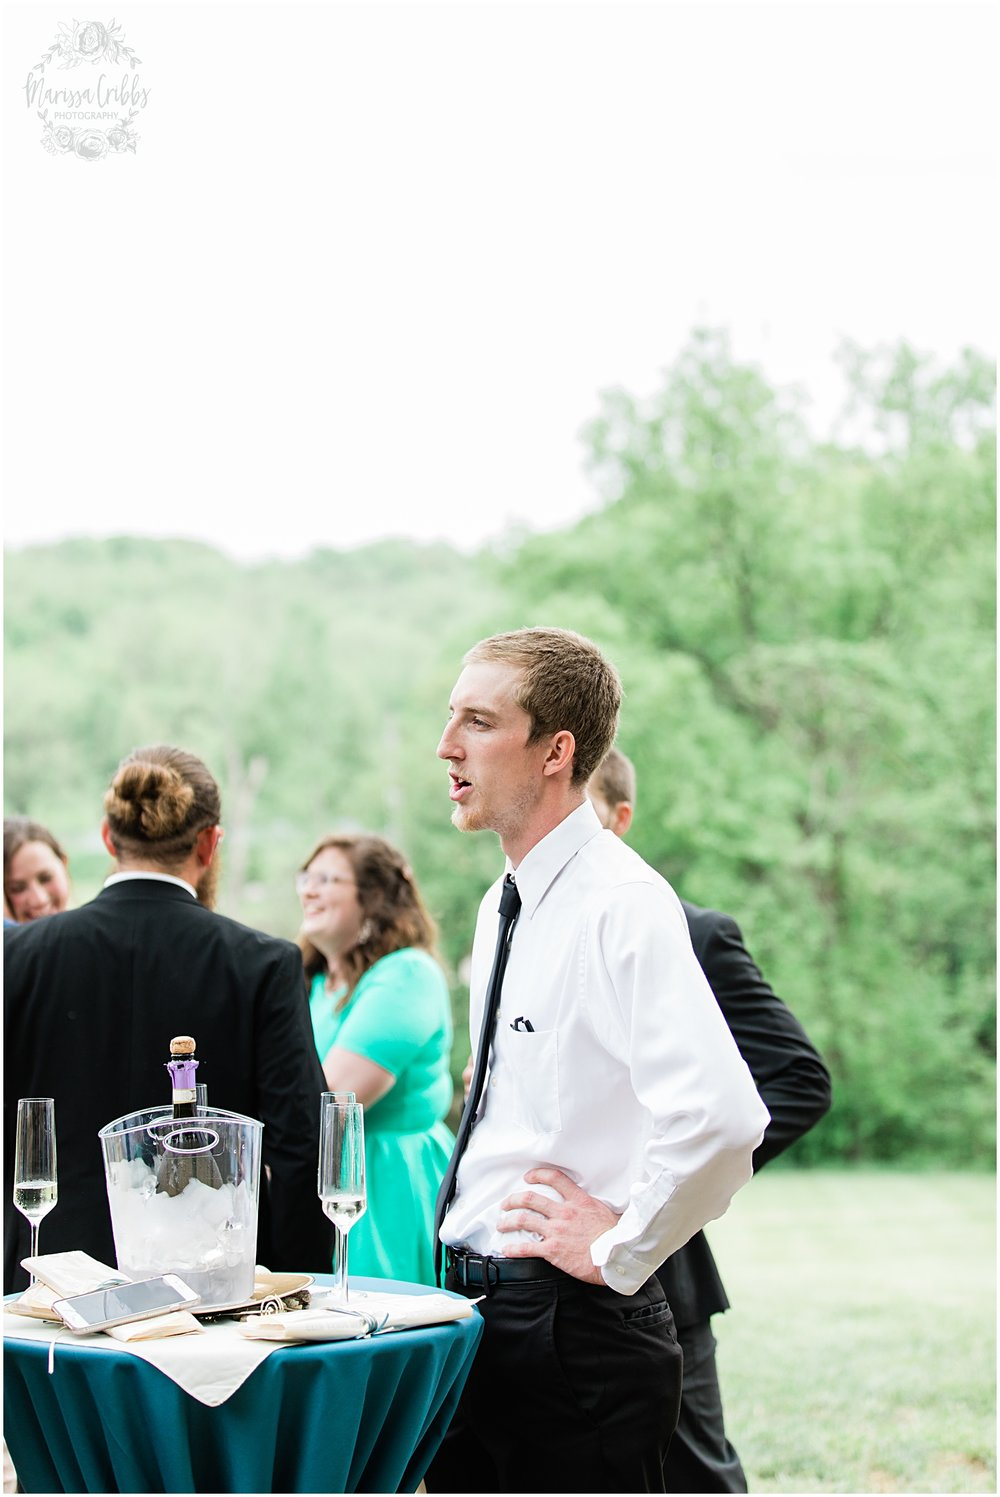 GORBY WEDDING | MARISSA CRIBBS PHOTOGRAPHY_5050.jpg